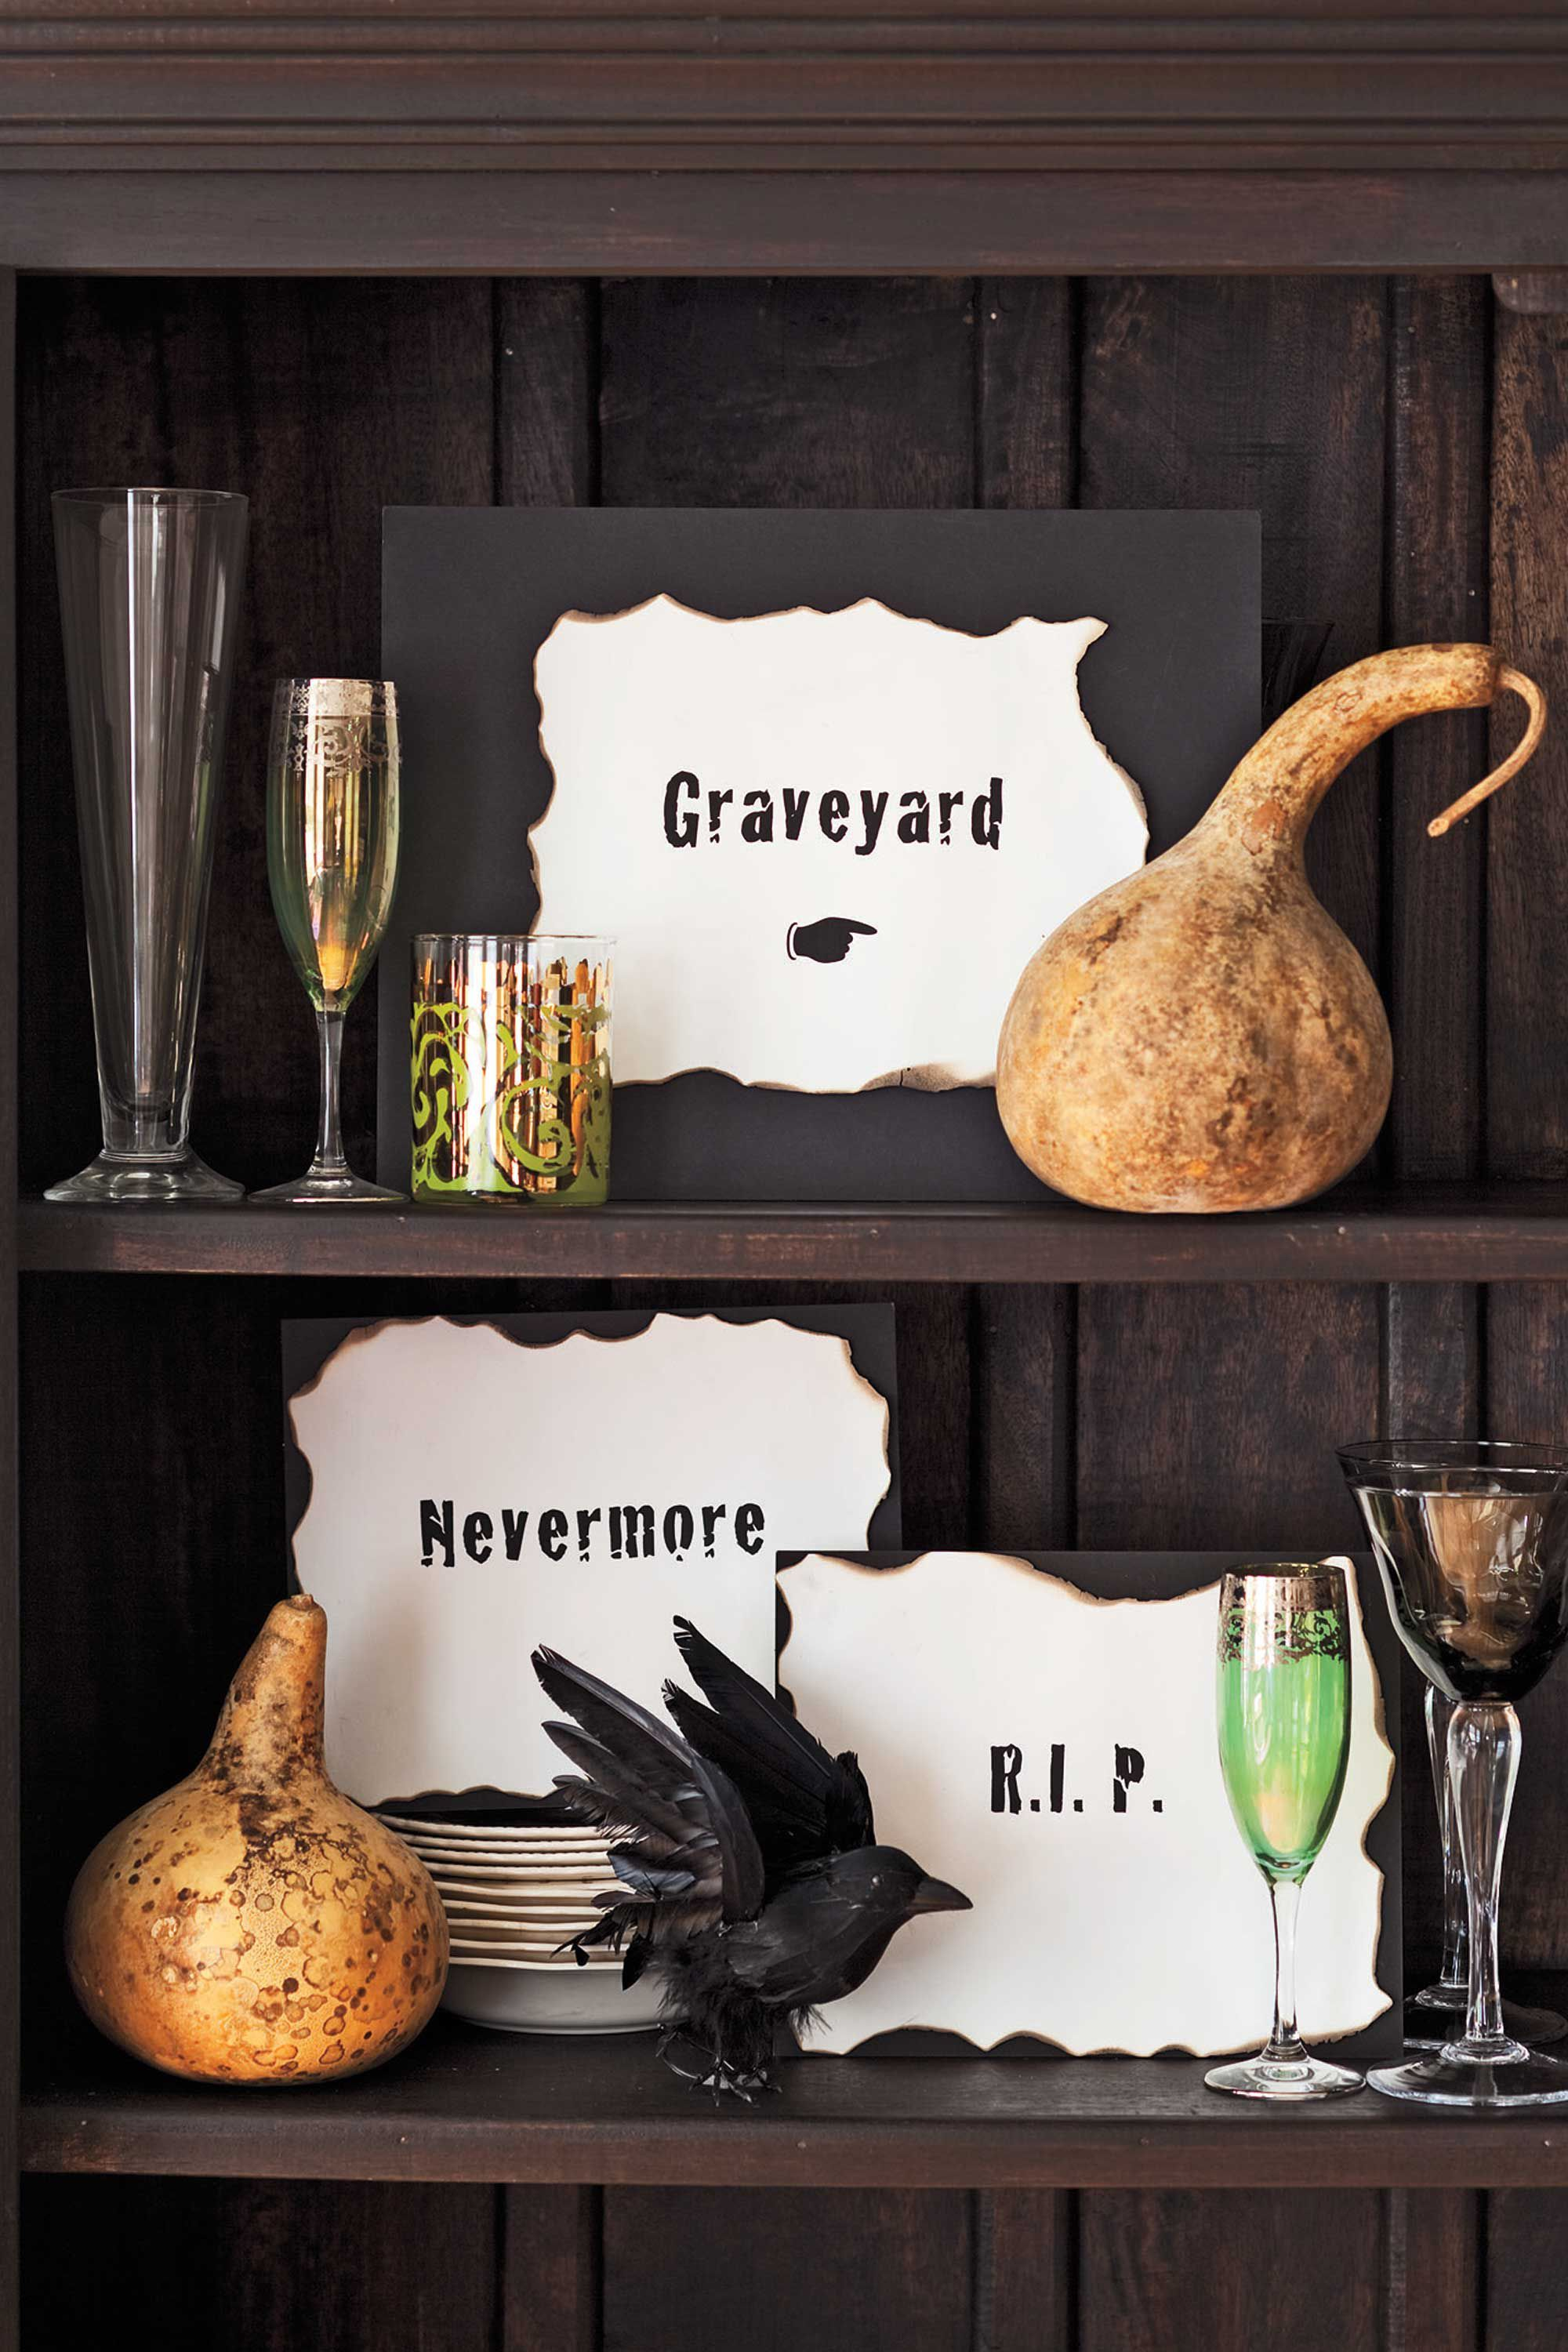 halloween decorations : halloween decorations homemade ideas - www.pureclipart.com